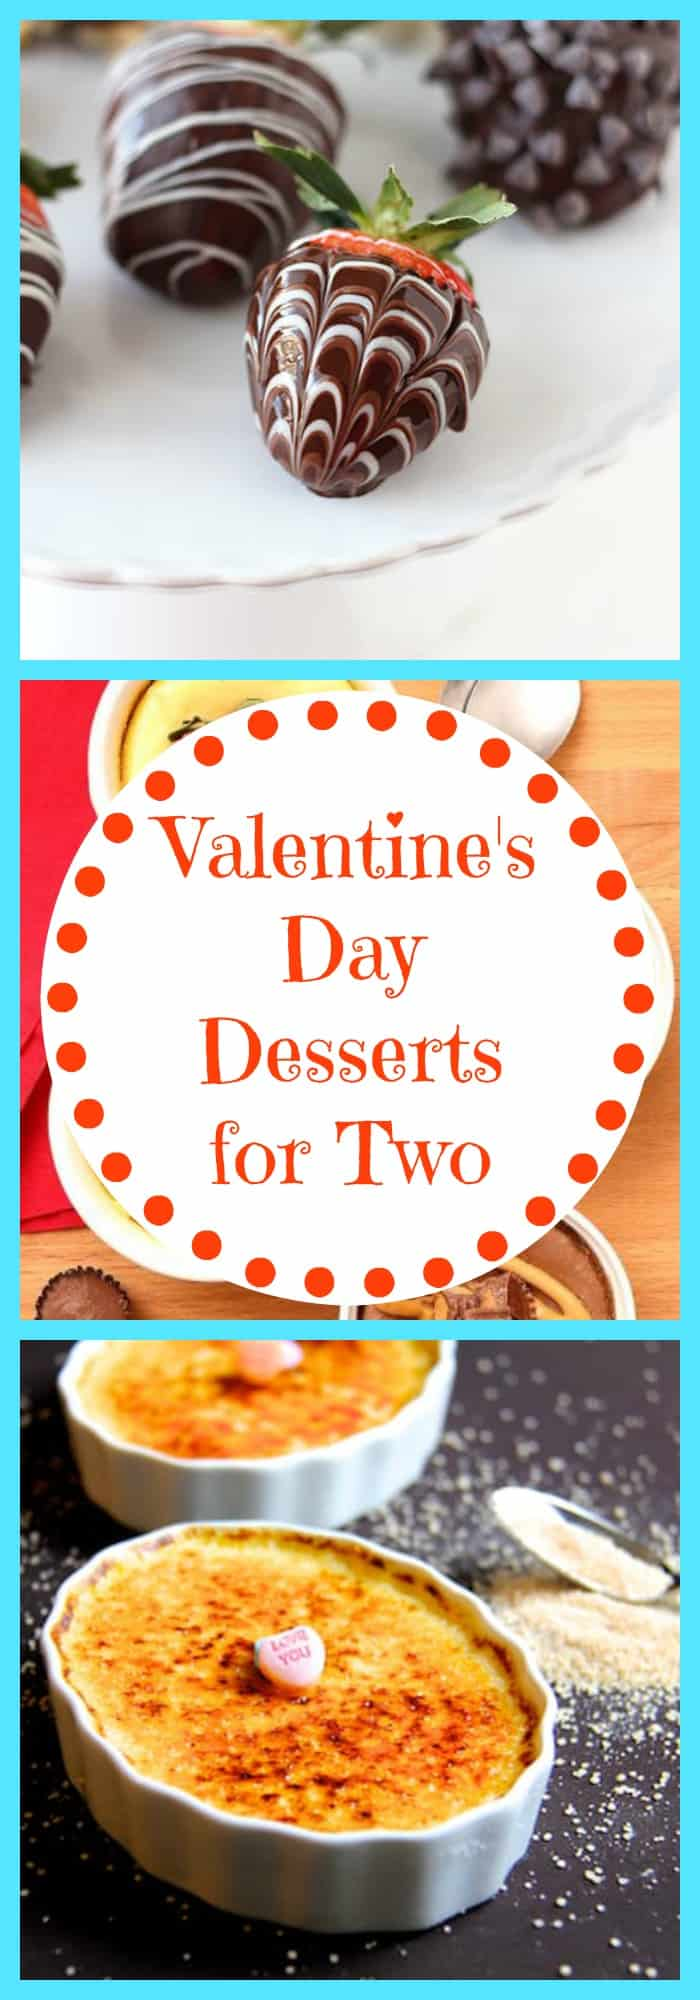 Valentine's Day Desserts for Two